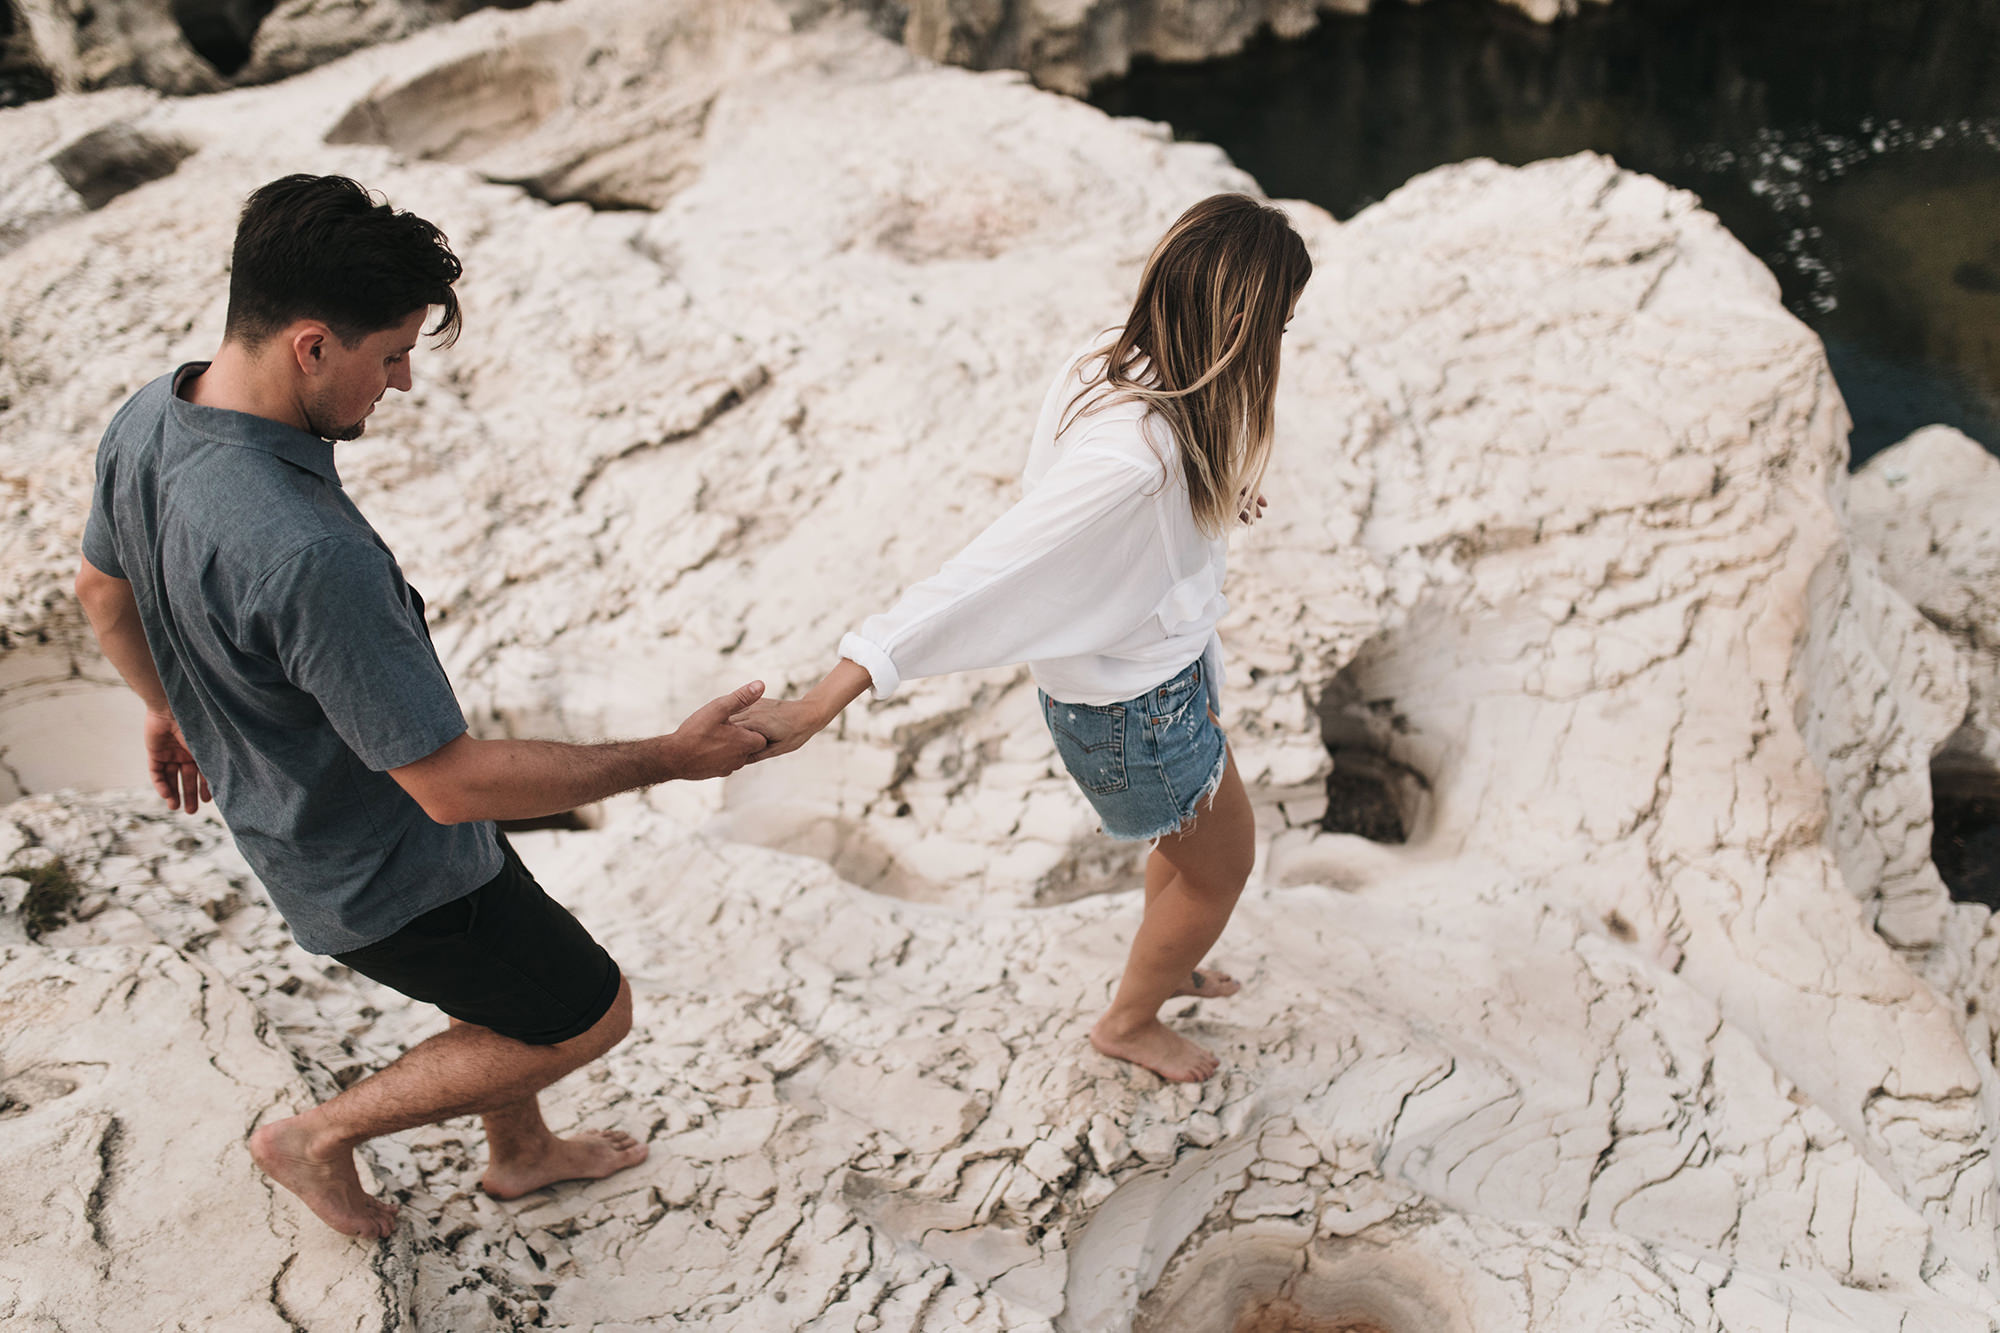 engagement_session_ardeche_river_C+M_neupapphotography-116.jpg